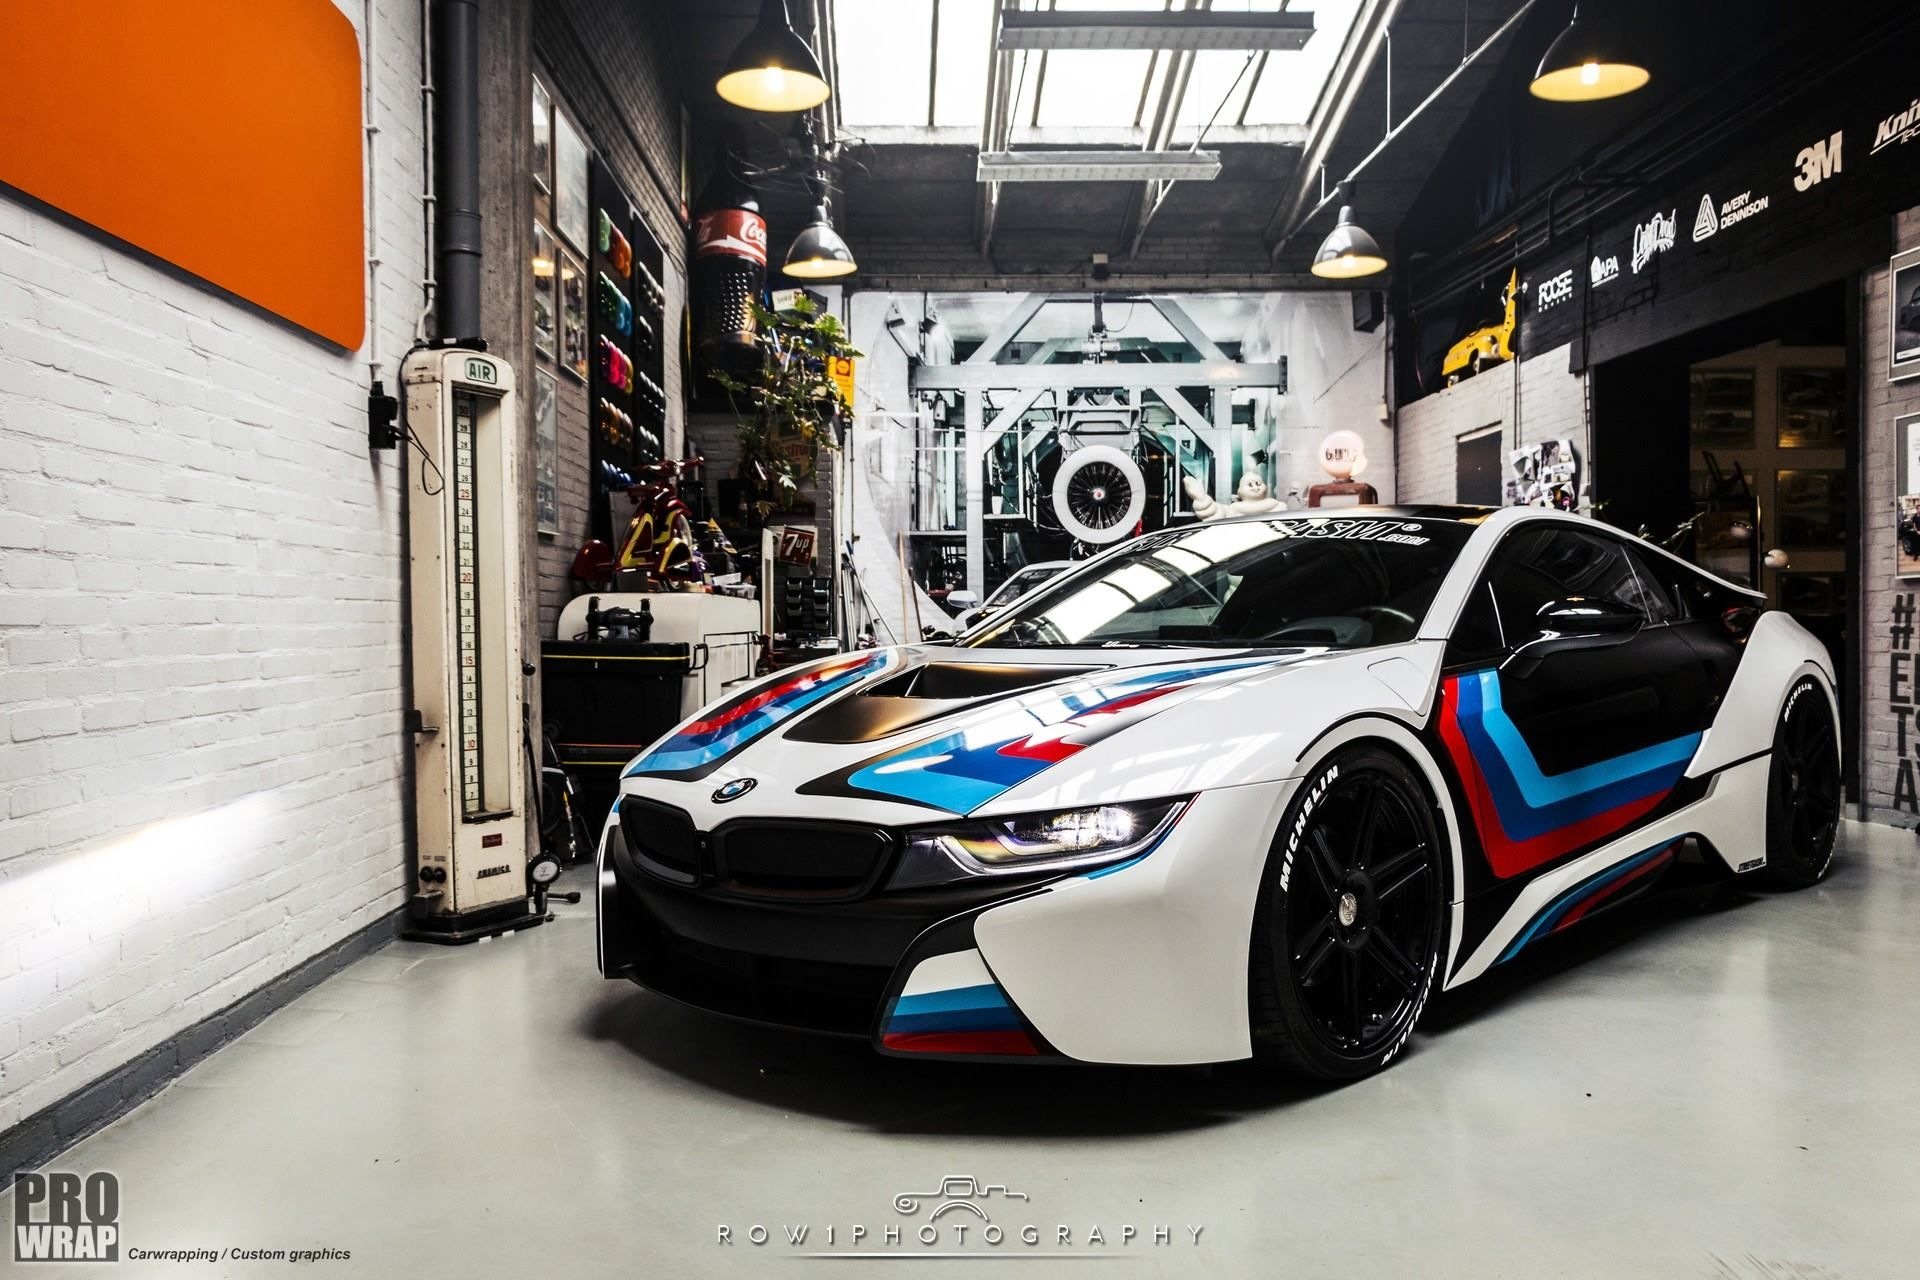 Bmw I8 Edrive Coupe Burn Electric Blue Pure Air Provocative